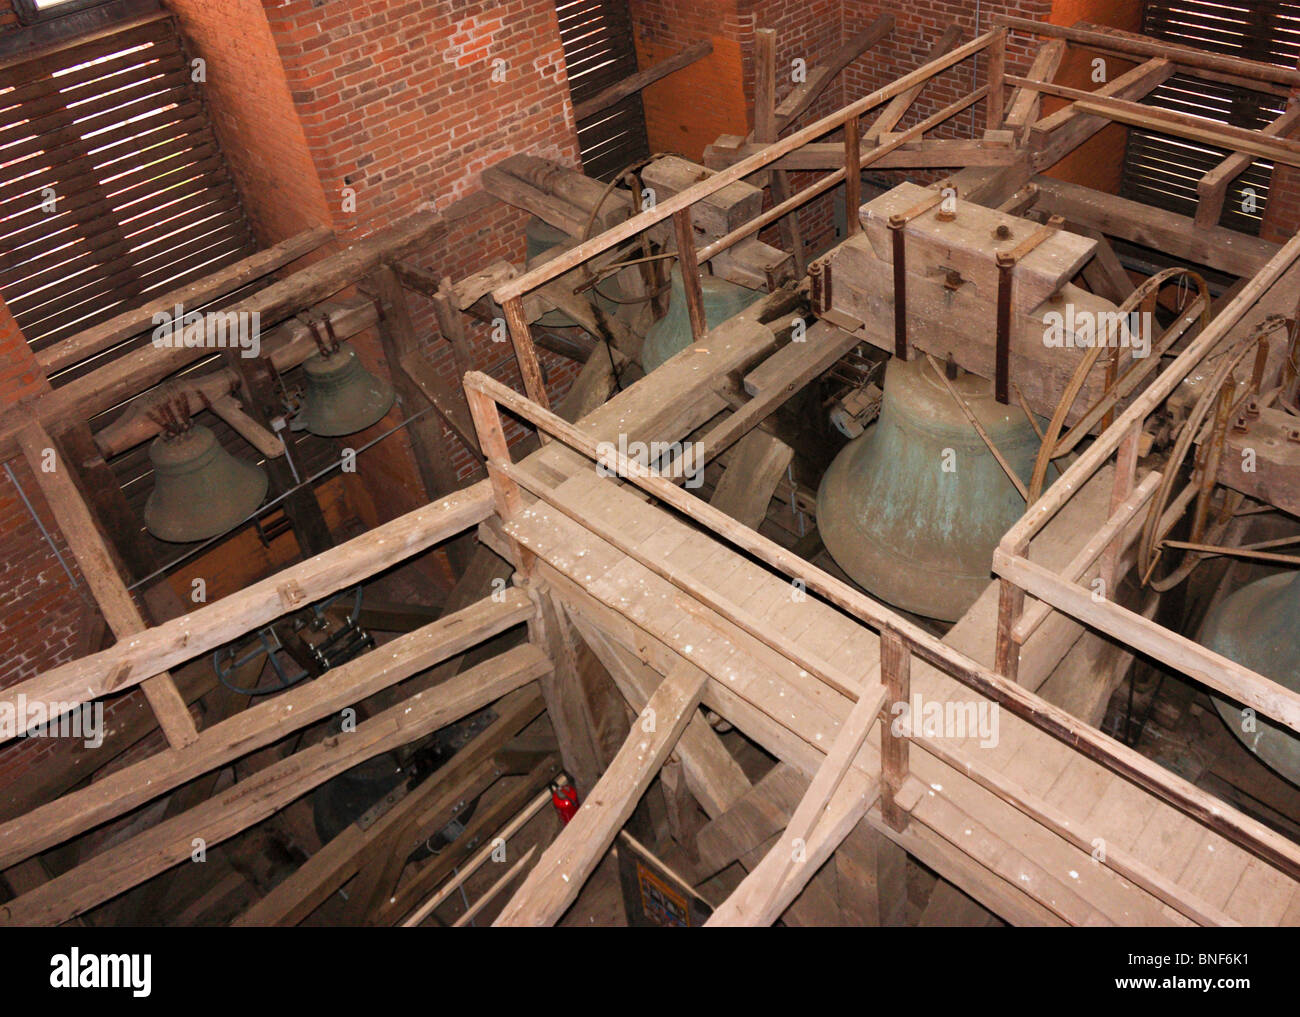 Church bells with wooden support structure, Wismar, Germany - Stock Image